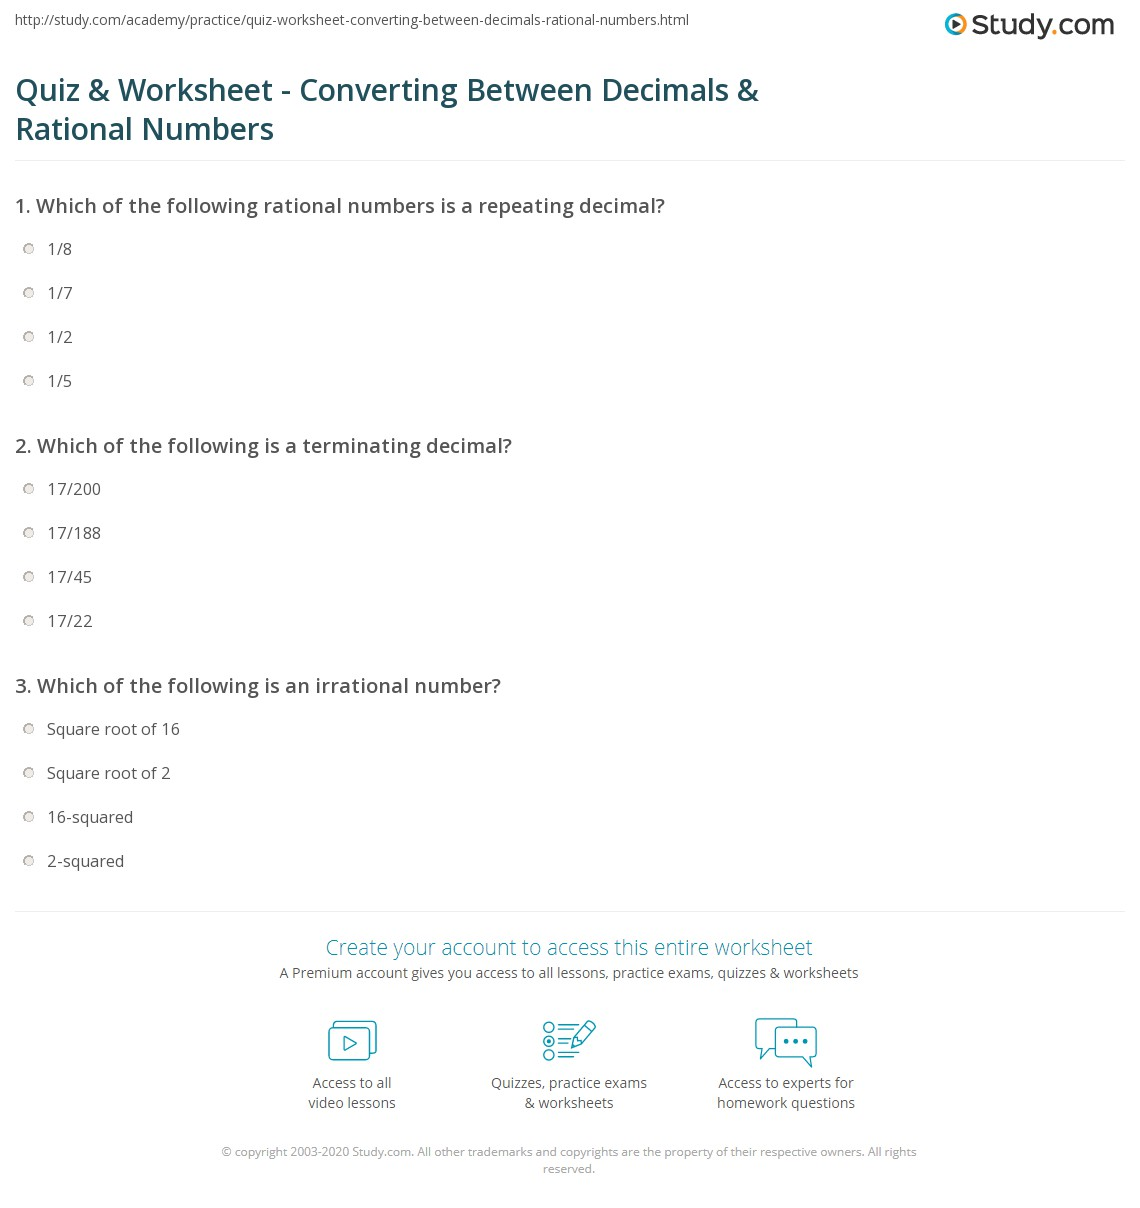 Quiz Worksheet Converting Between Decimals Rational Numbers – Rational and Irrational Numbers Worksheet